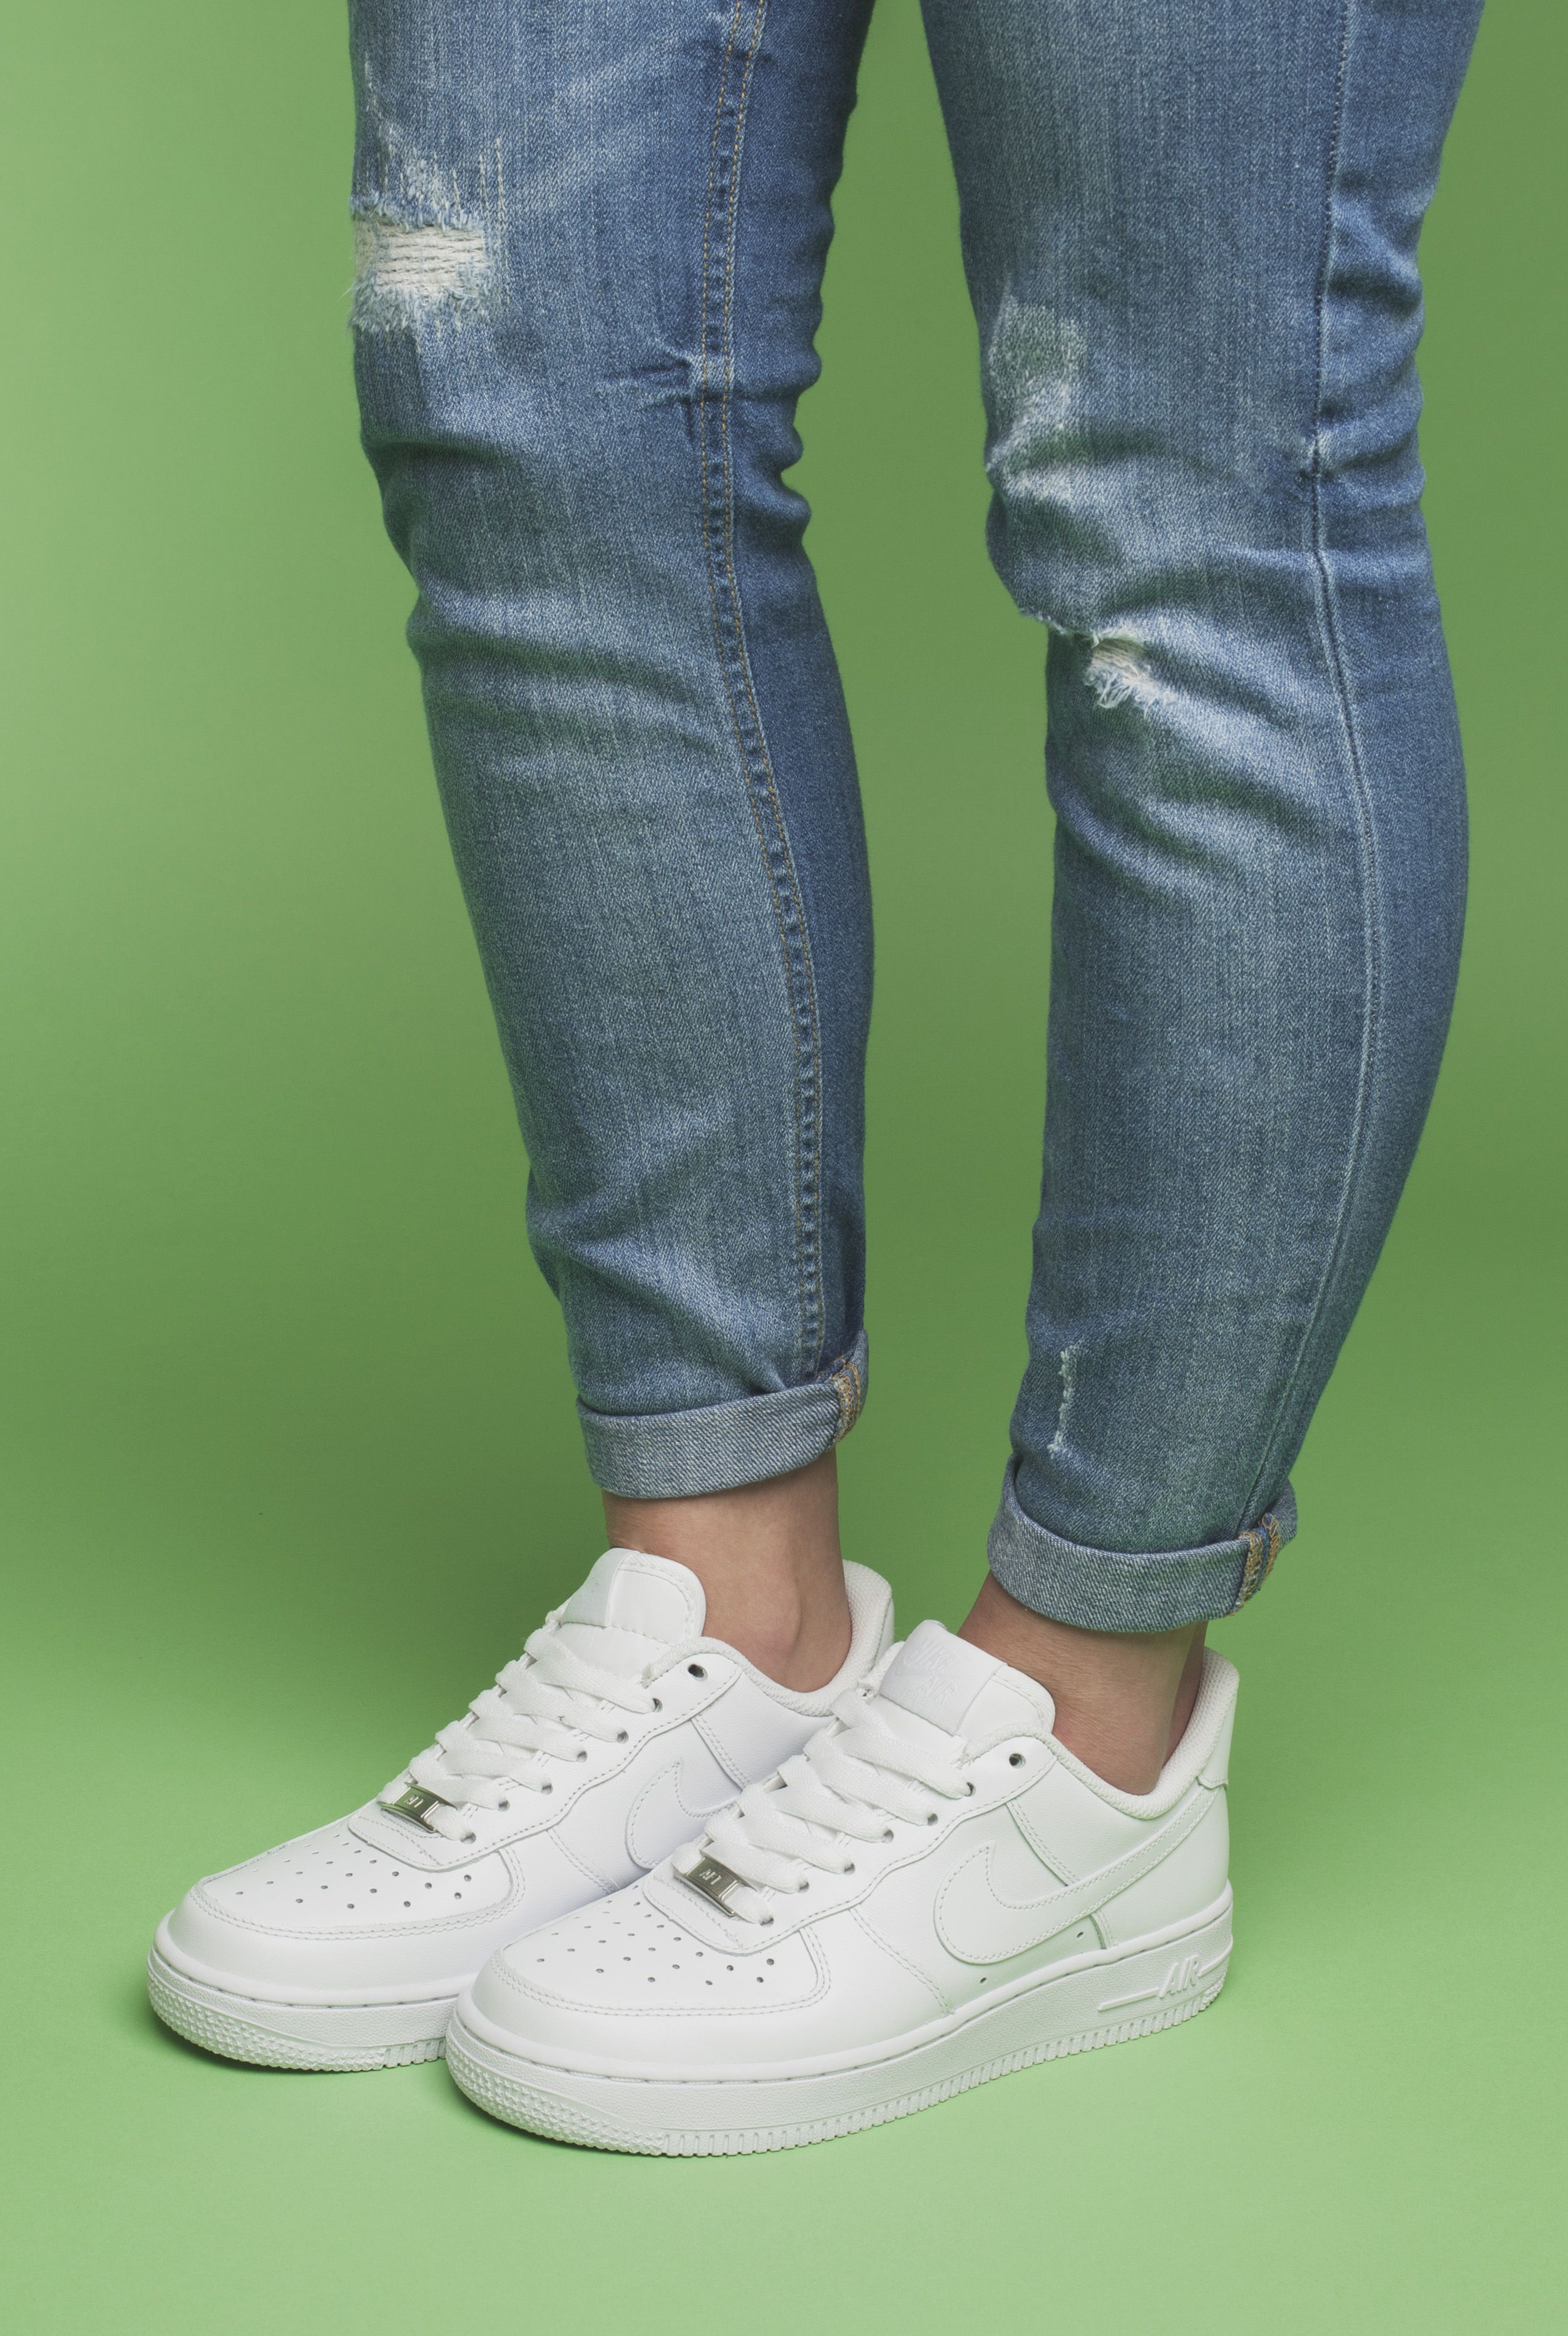 5c5a69f47d27 The Nike Air Force 1 low trainers in crisp white. Your go to summer  trainers.